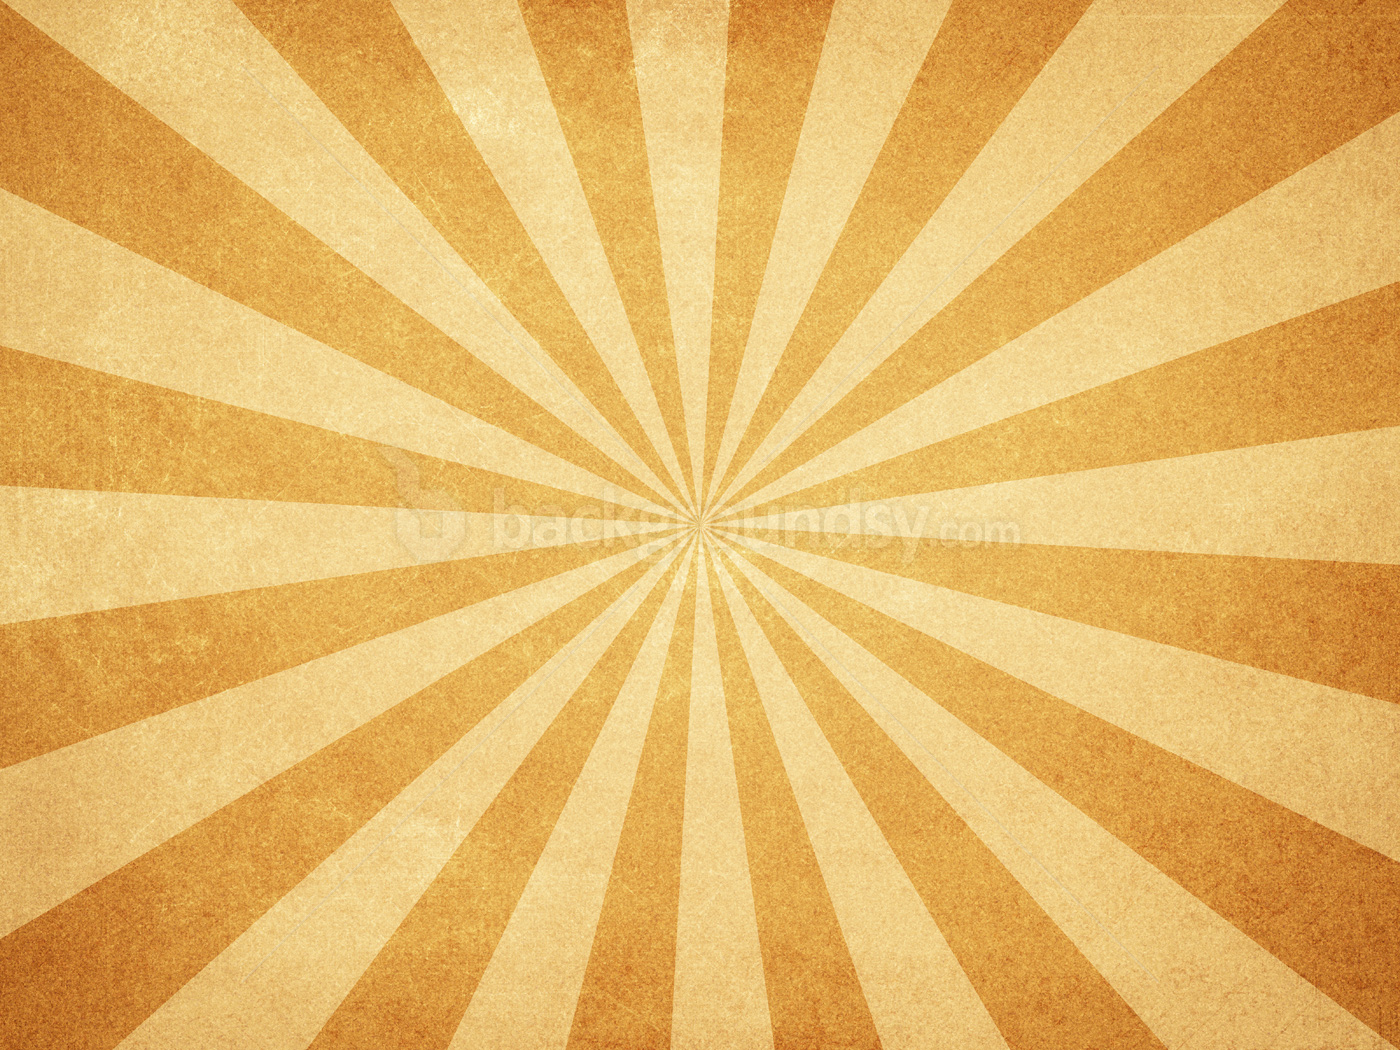 Sunbeam Backgrounds